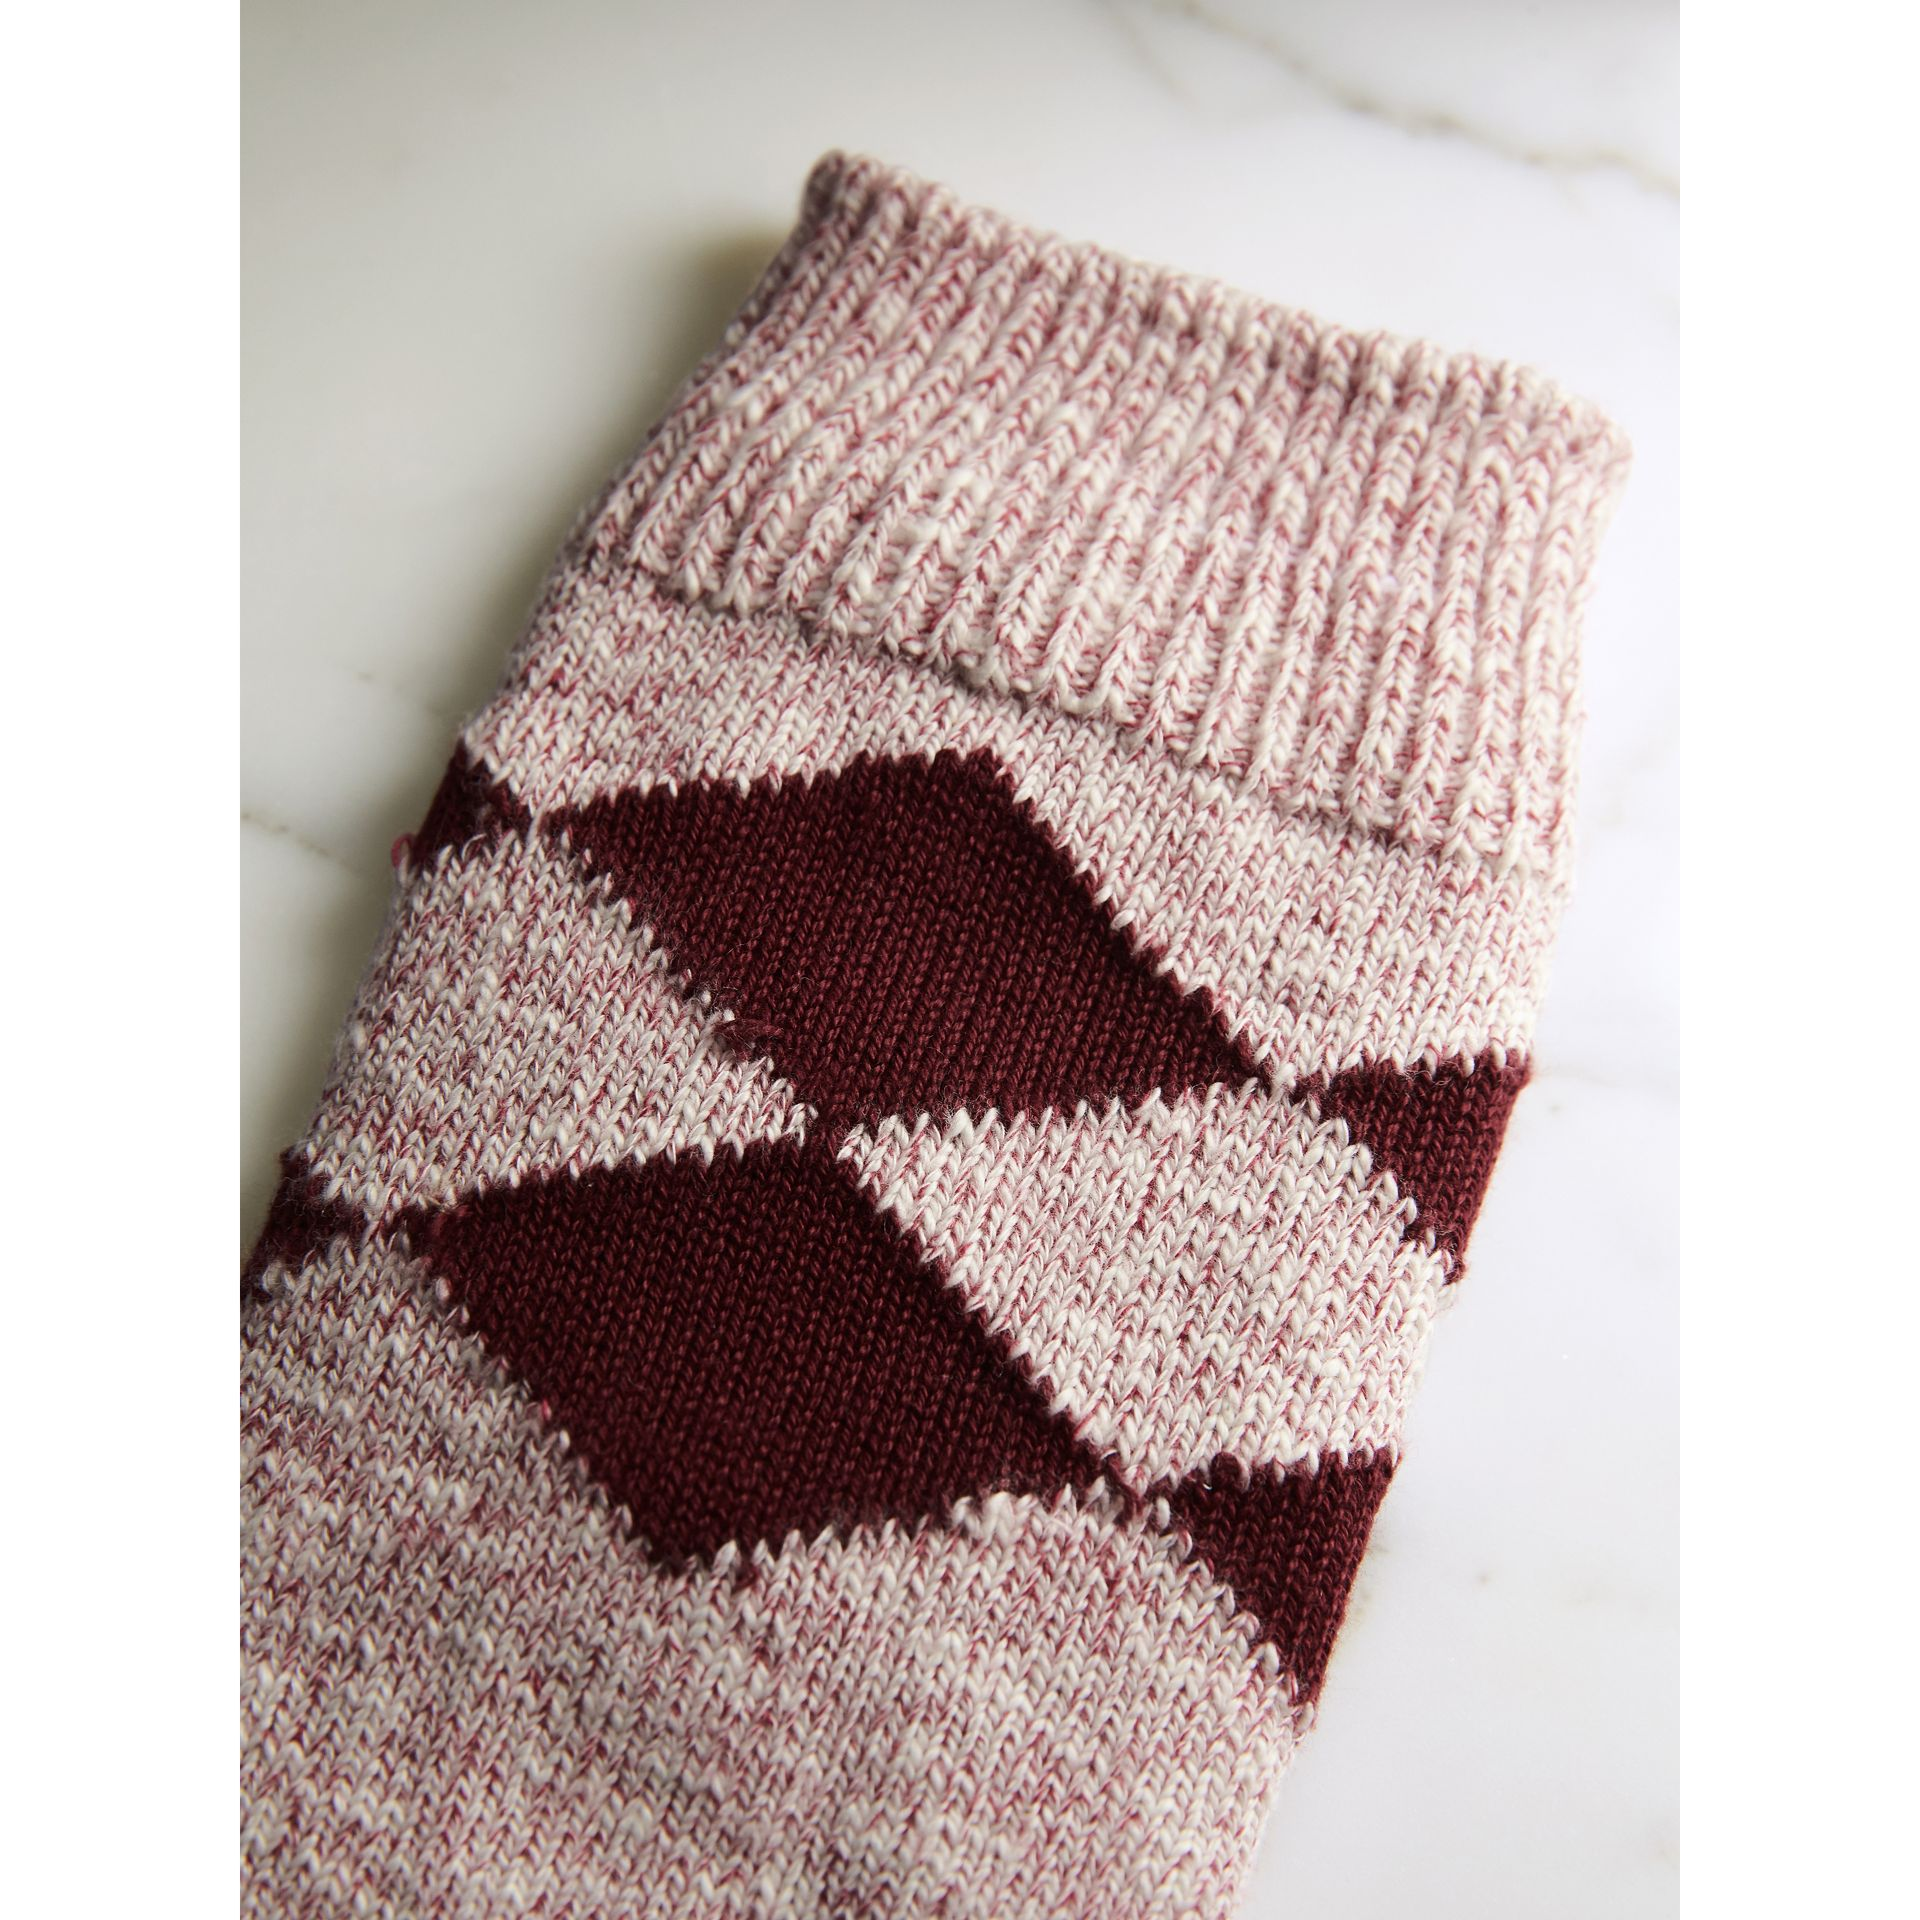 Diamond Knitted Cotton Mouliné Socks in Burgundy | Burberry - gallery image 1